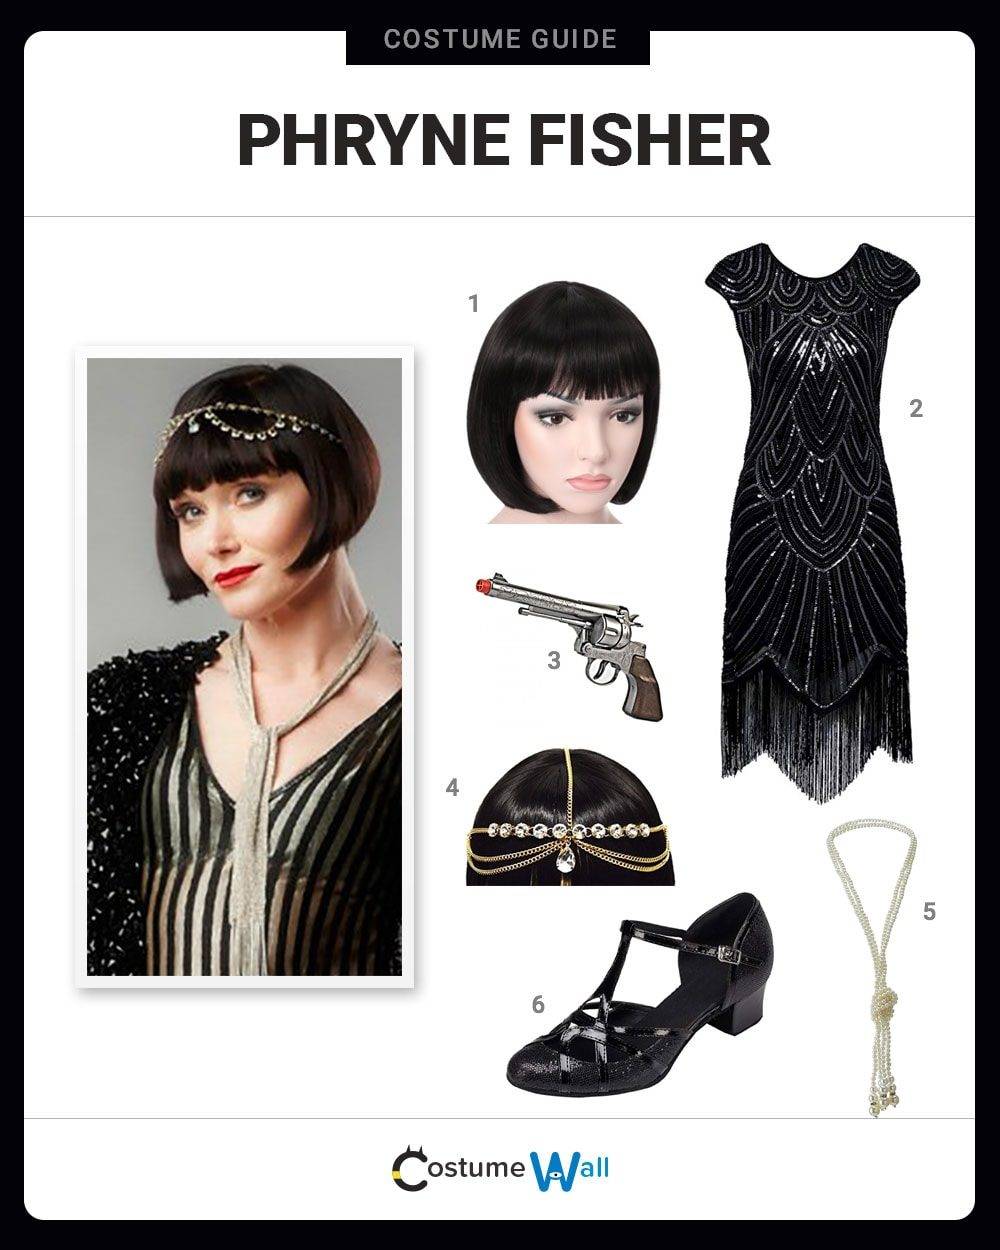 Phryne Fisher Costume Guide